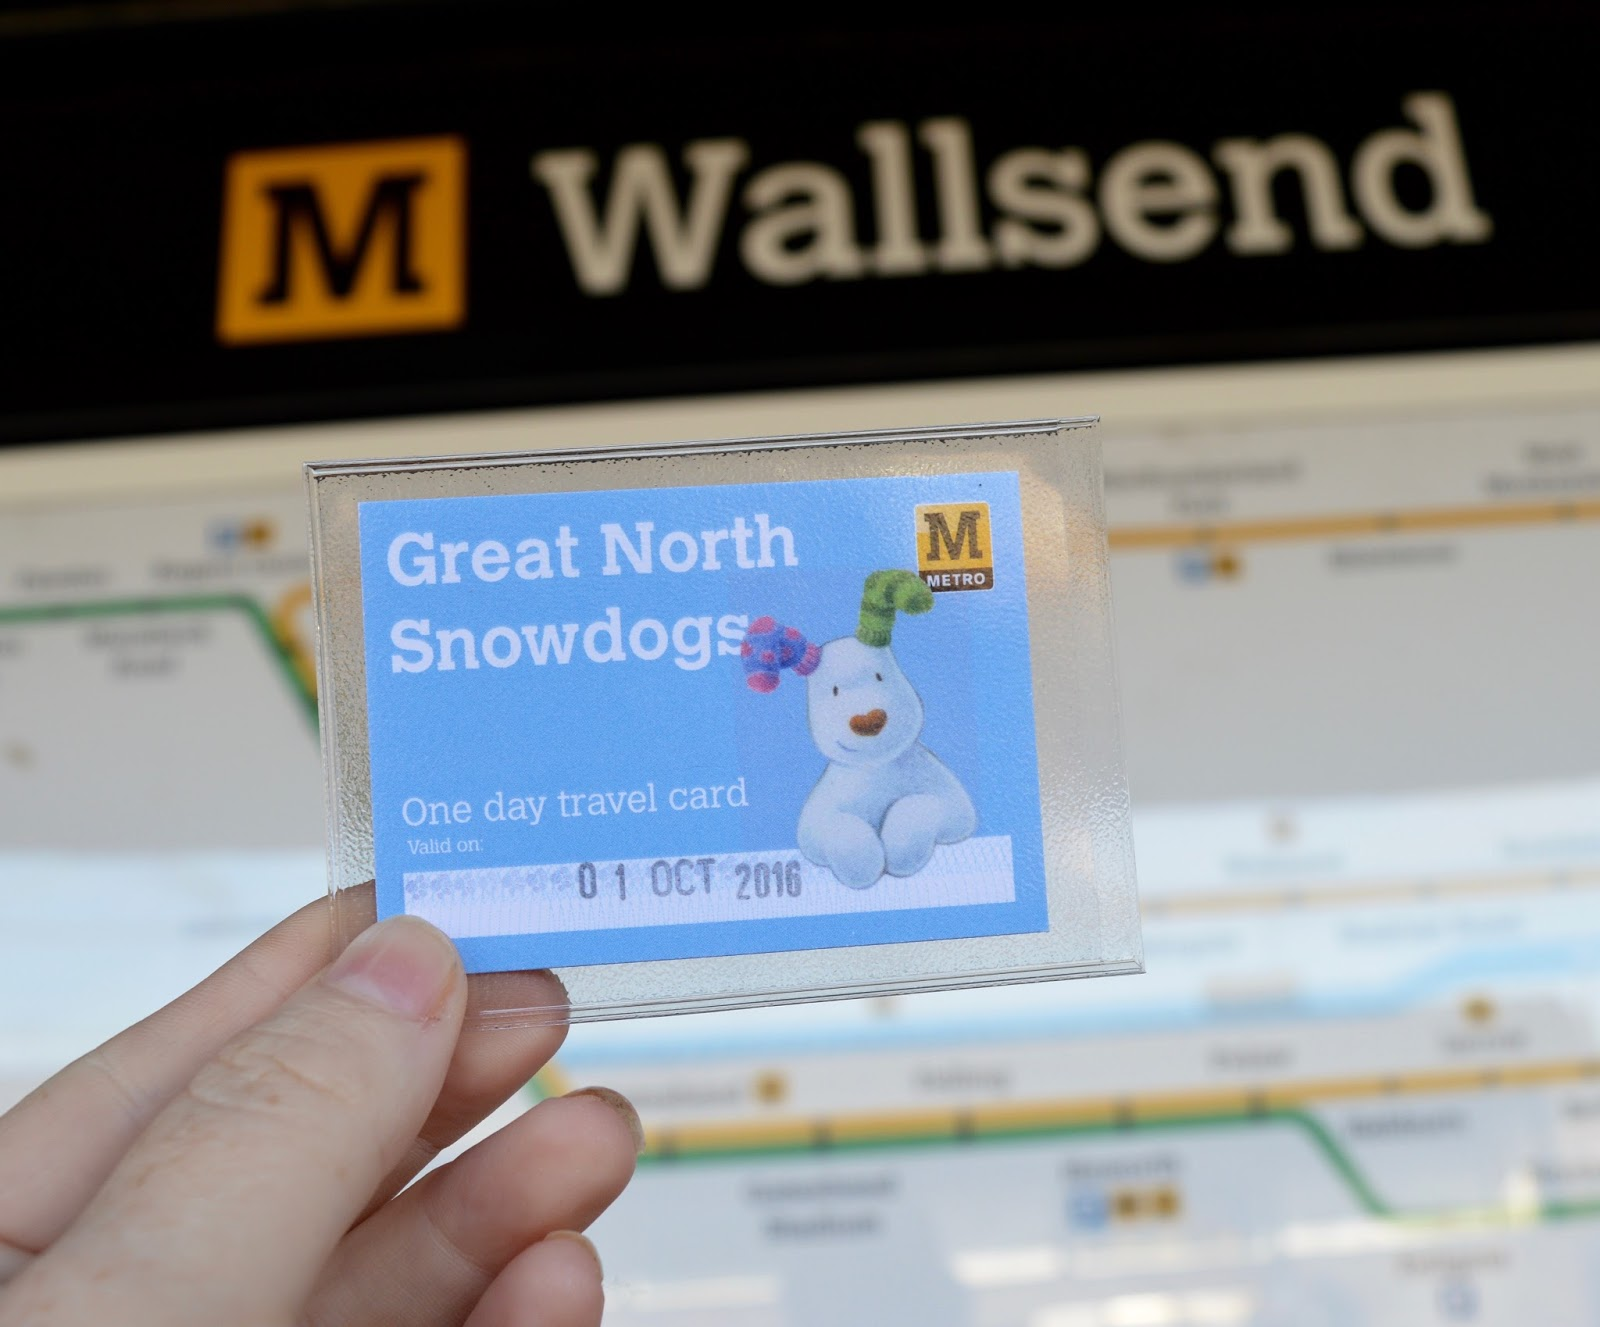 Explore the Great North Snowdogs with Tyne & Wear Metro - one day travel card